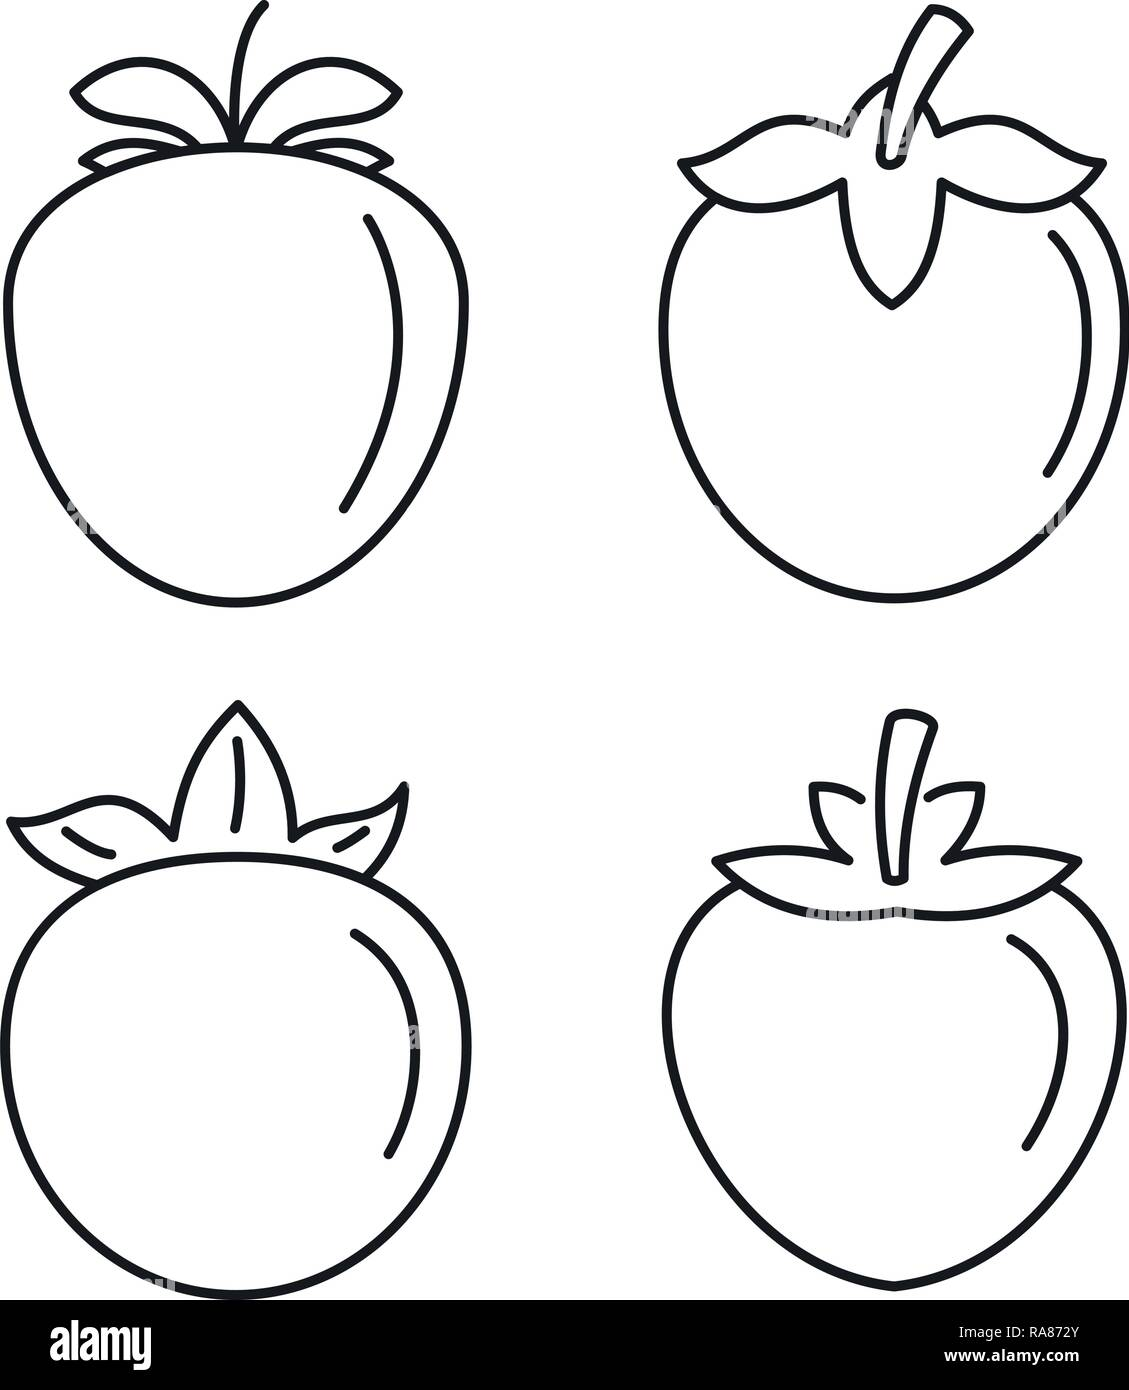 Coloriage Fruit Kaki.Isolated Outline Fruit Vector Illustration Photos Isolated Outline